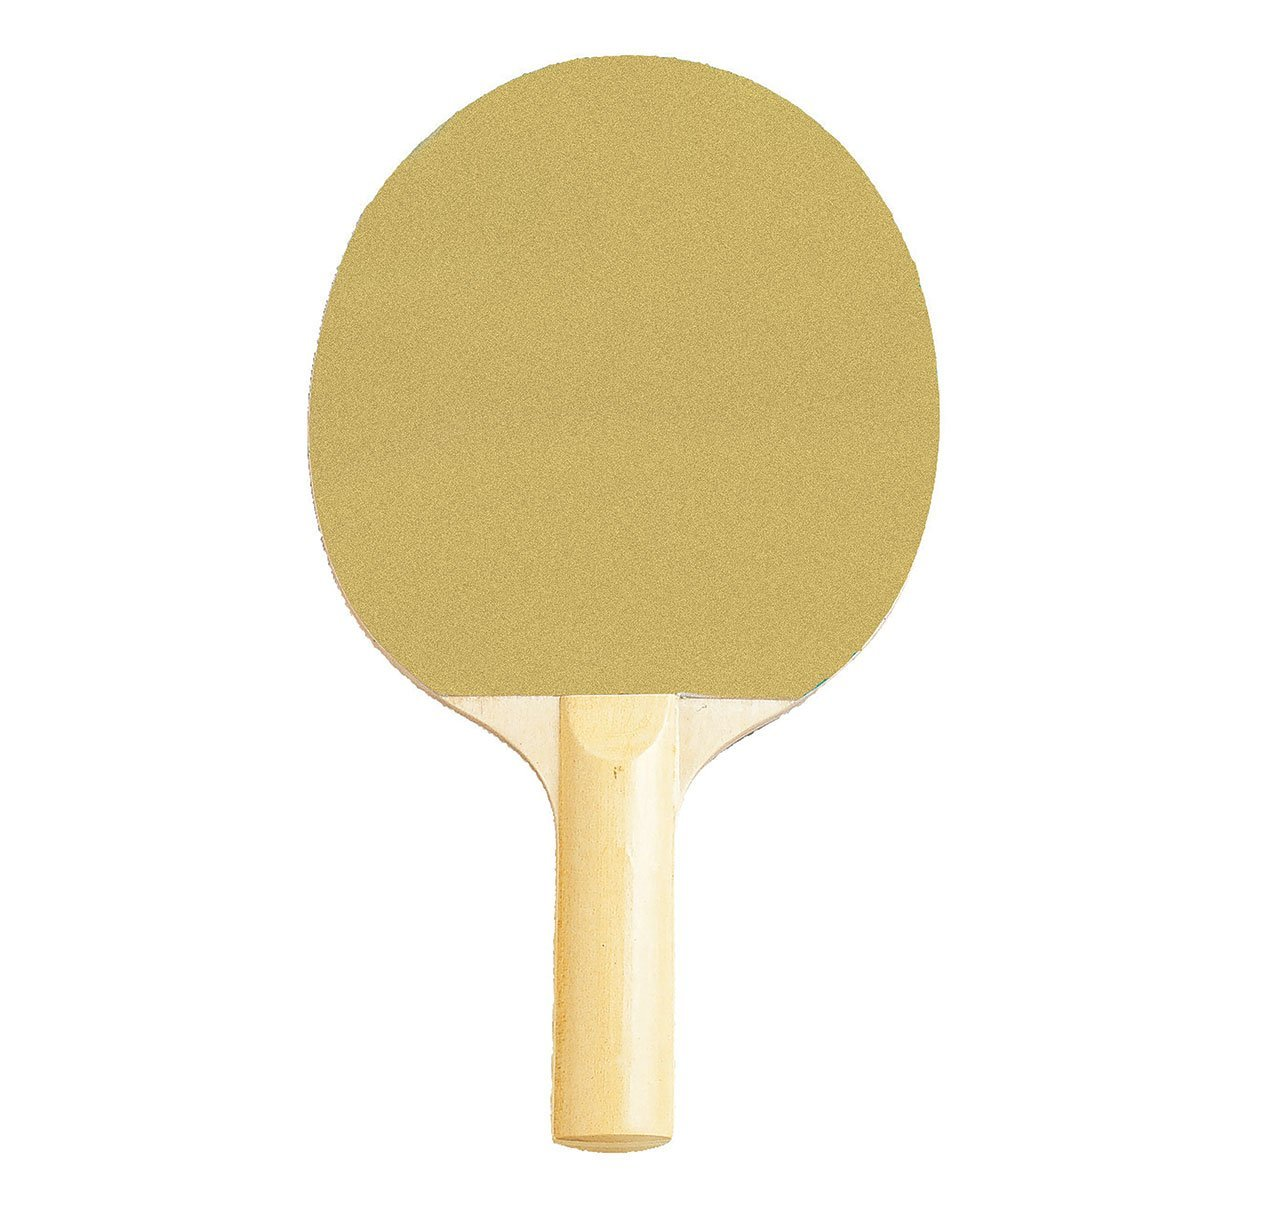 5-Ply Sand Face Ping Pong Paddle, Paddles Sand Paddle Set Sandpaper 2Pack Faced 5Ply... by